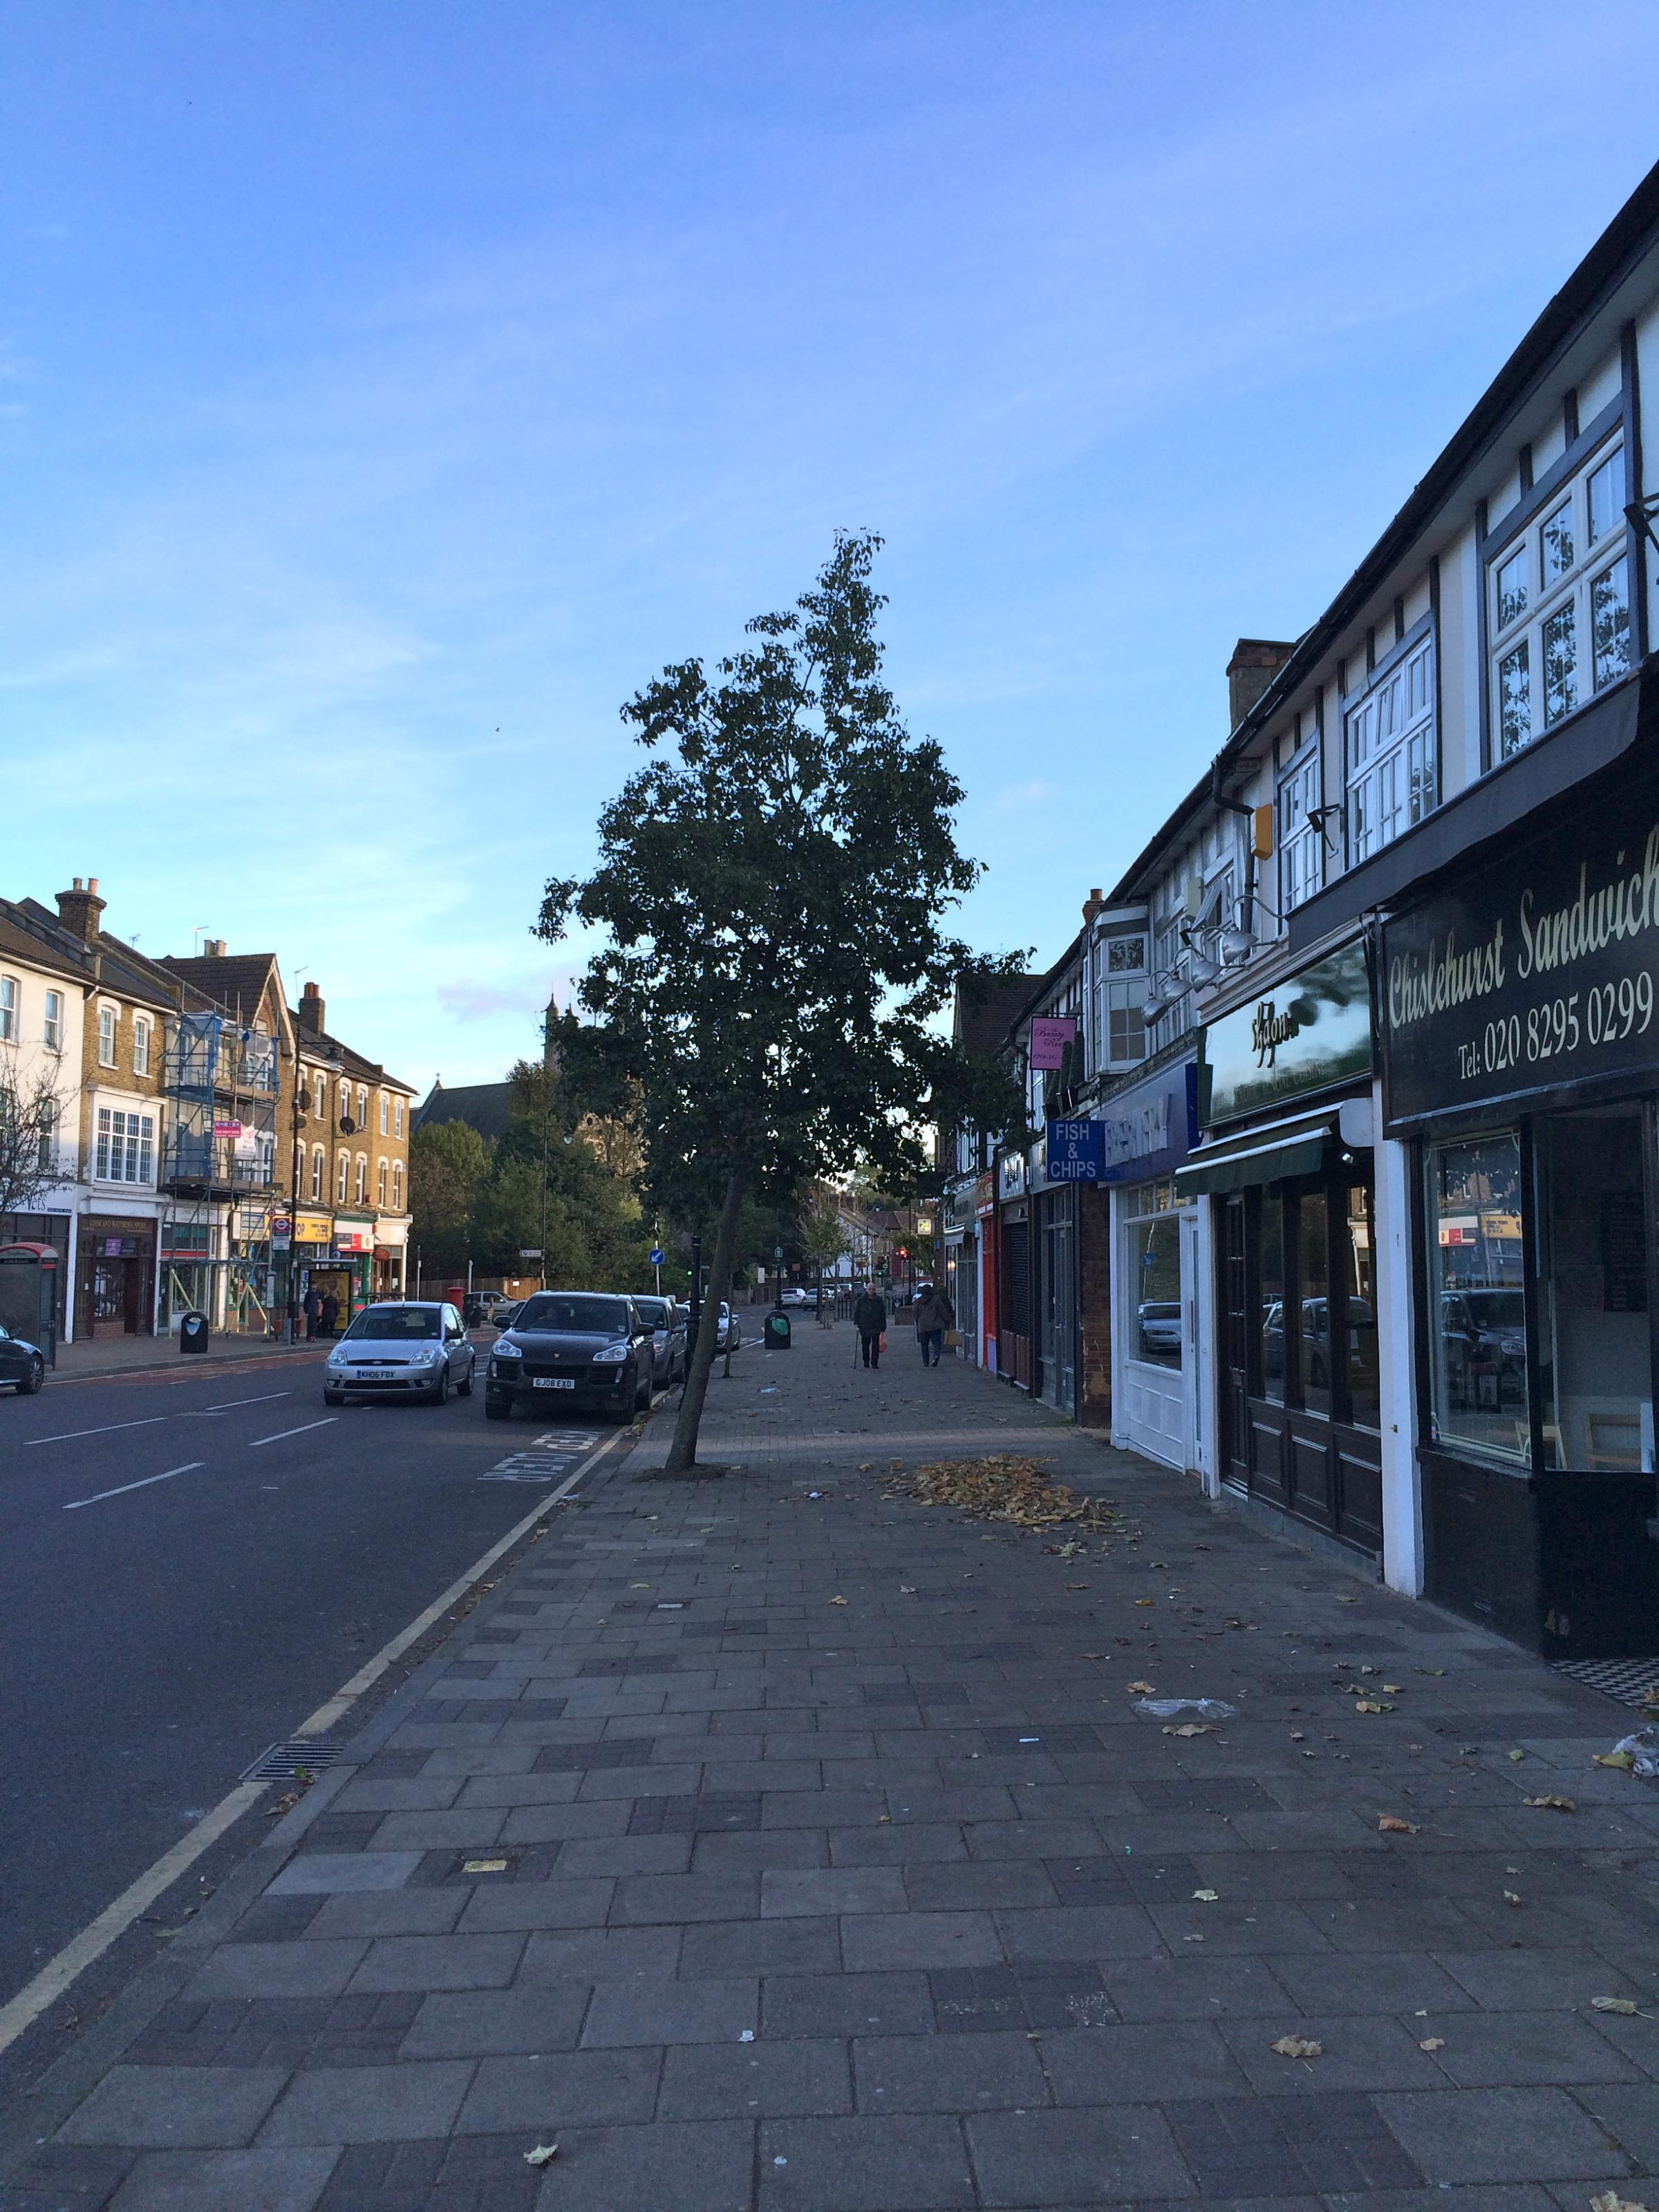 Loyalty card scheme set up in Chislehurst and beyond to help community thrive